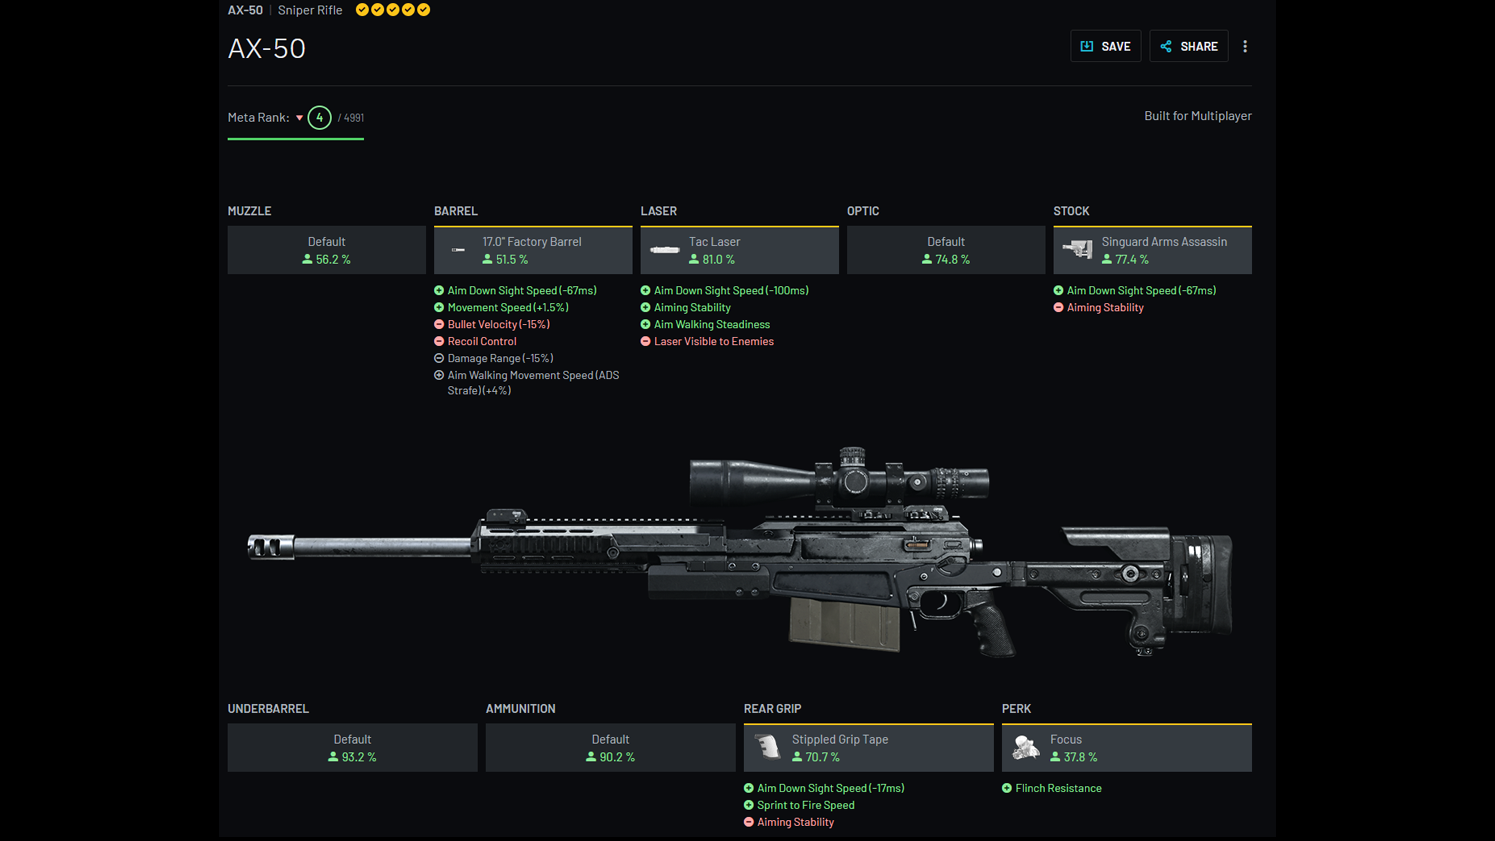 AX-50 Sniper Rifle surrounded by attachments to increase skills